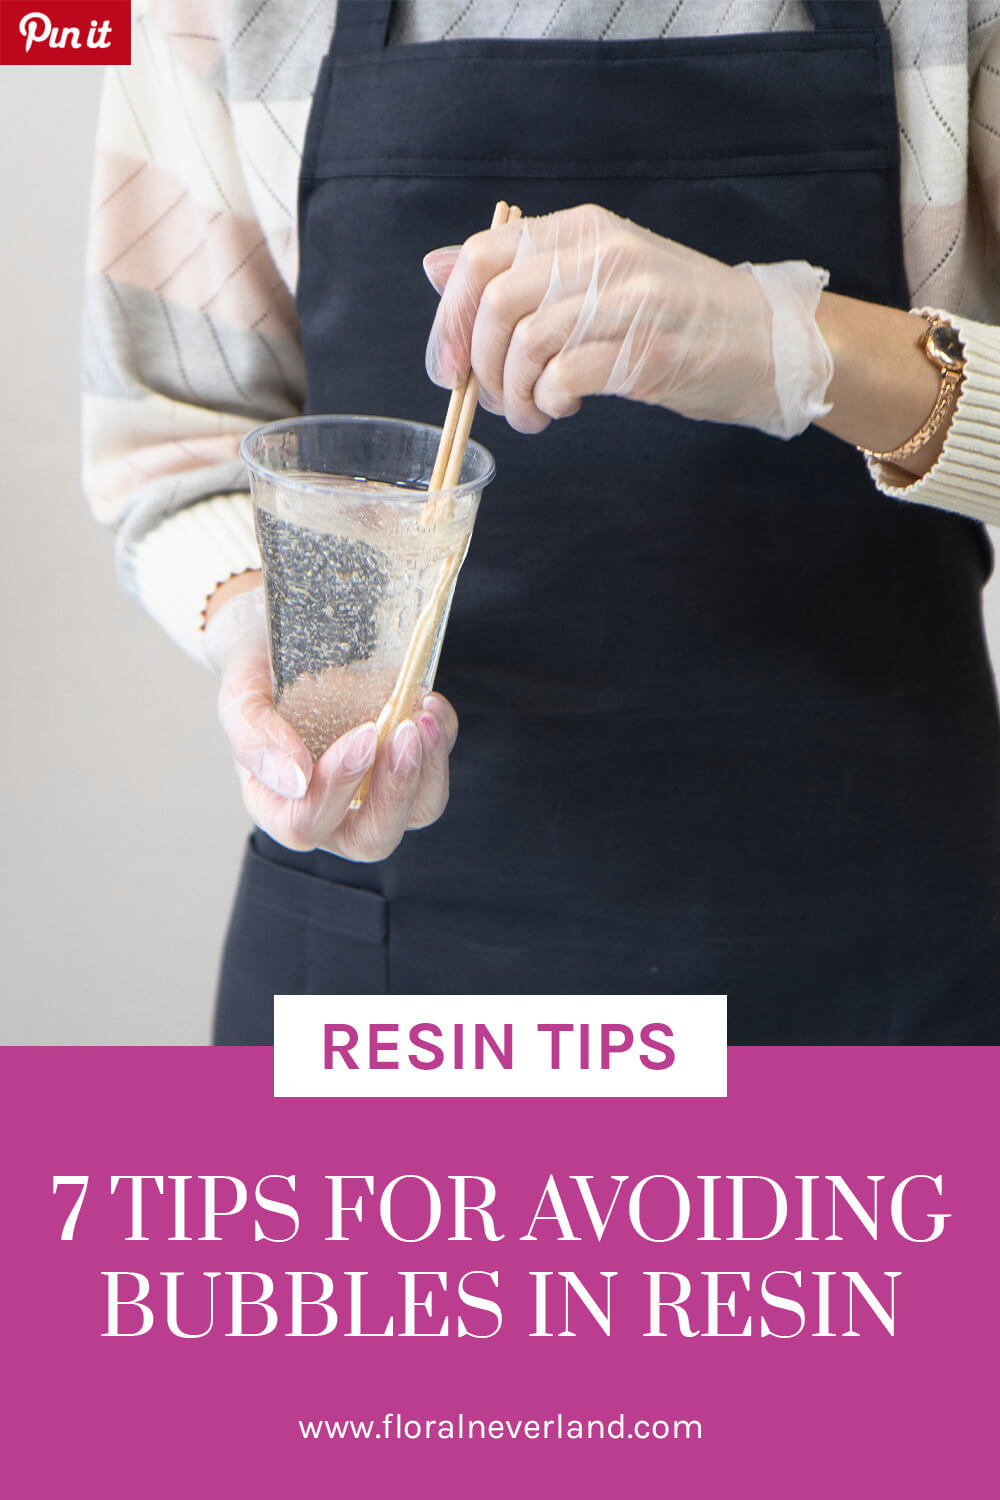 7 Tips for Avoiding Bubbles in Resin by Floral Neverland Floralfy